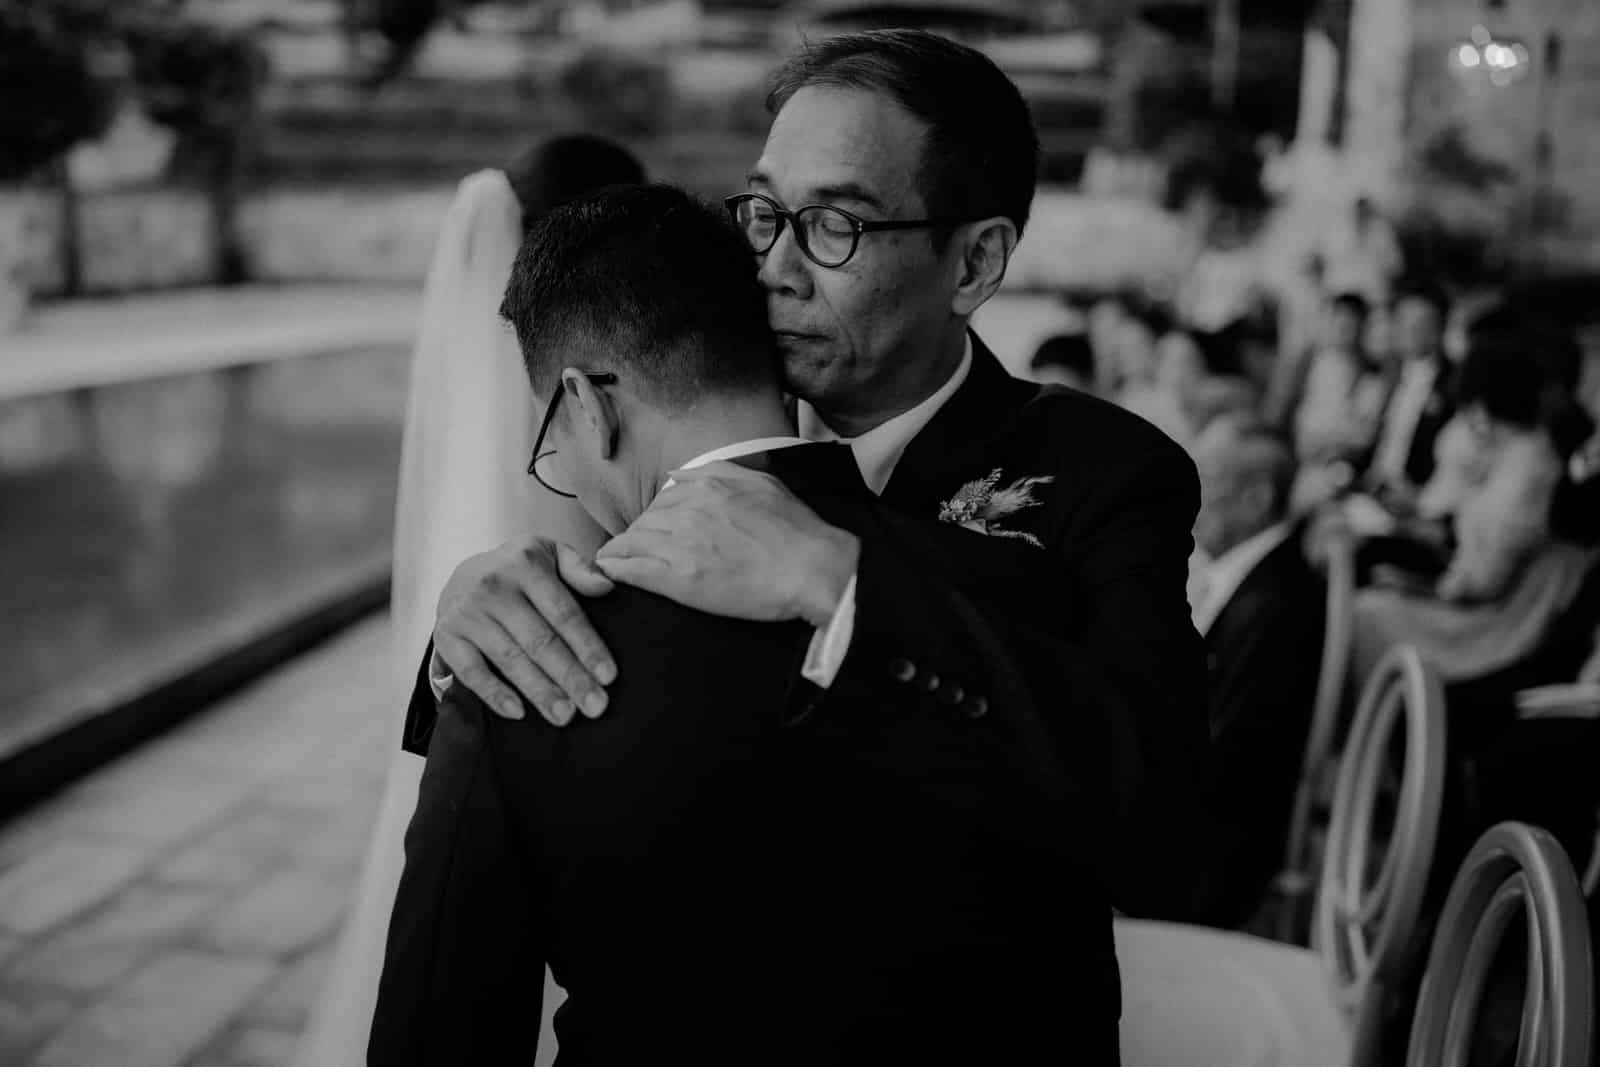 The groom is hugging a wedding guest.